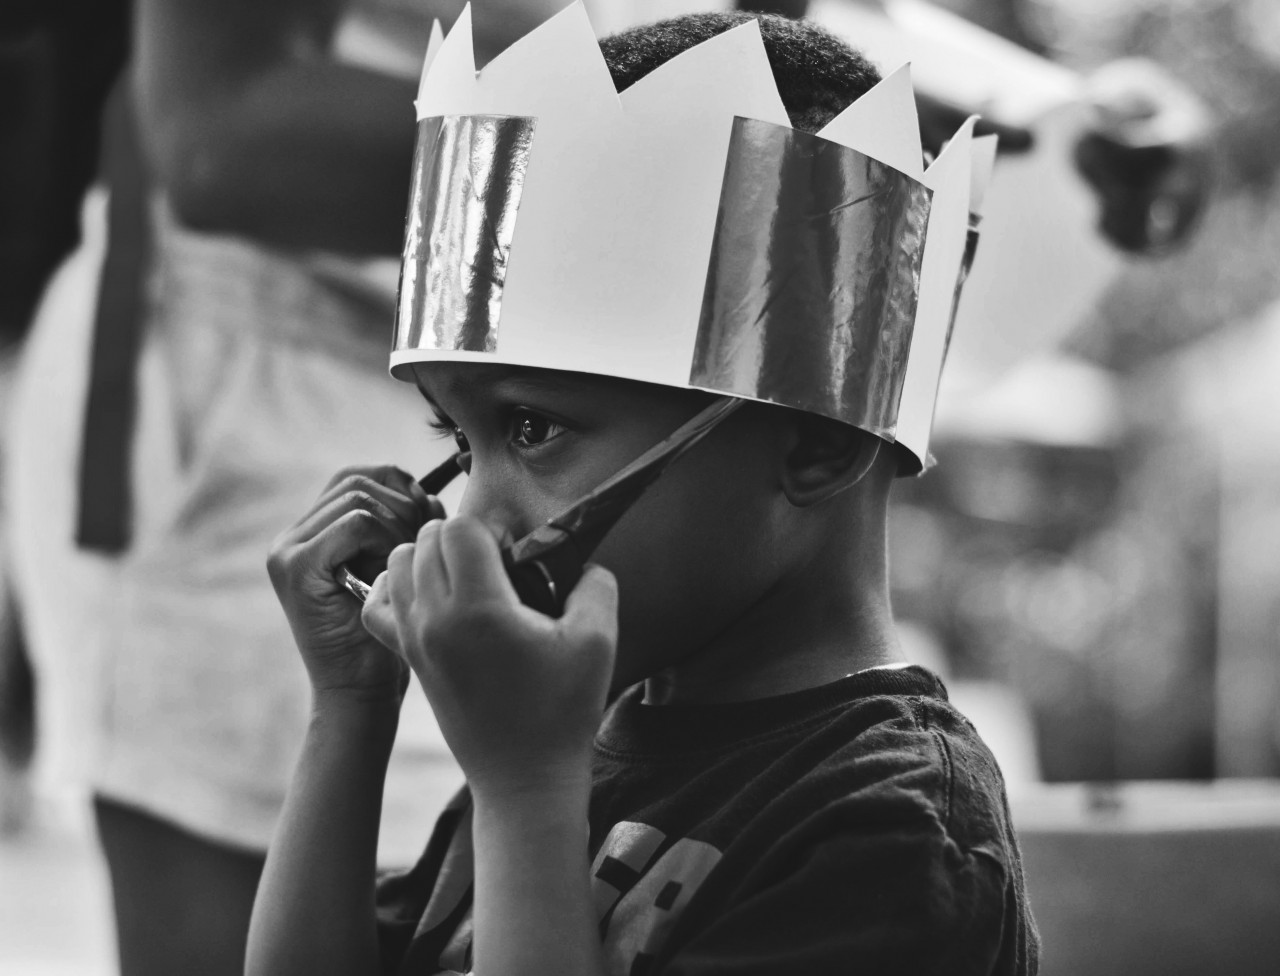 Boy removing sunglasses and wearing a paper crown